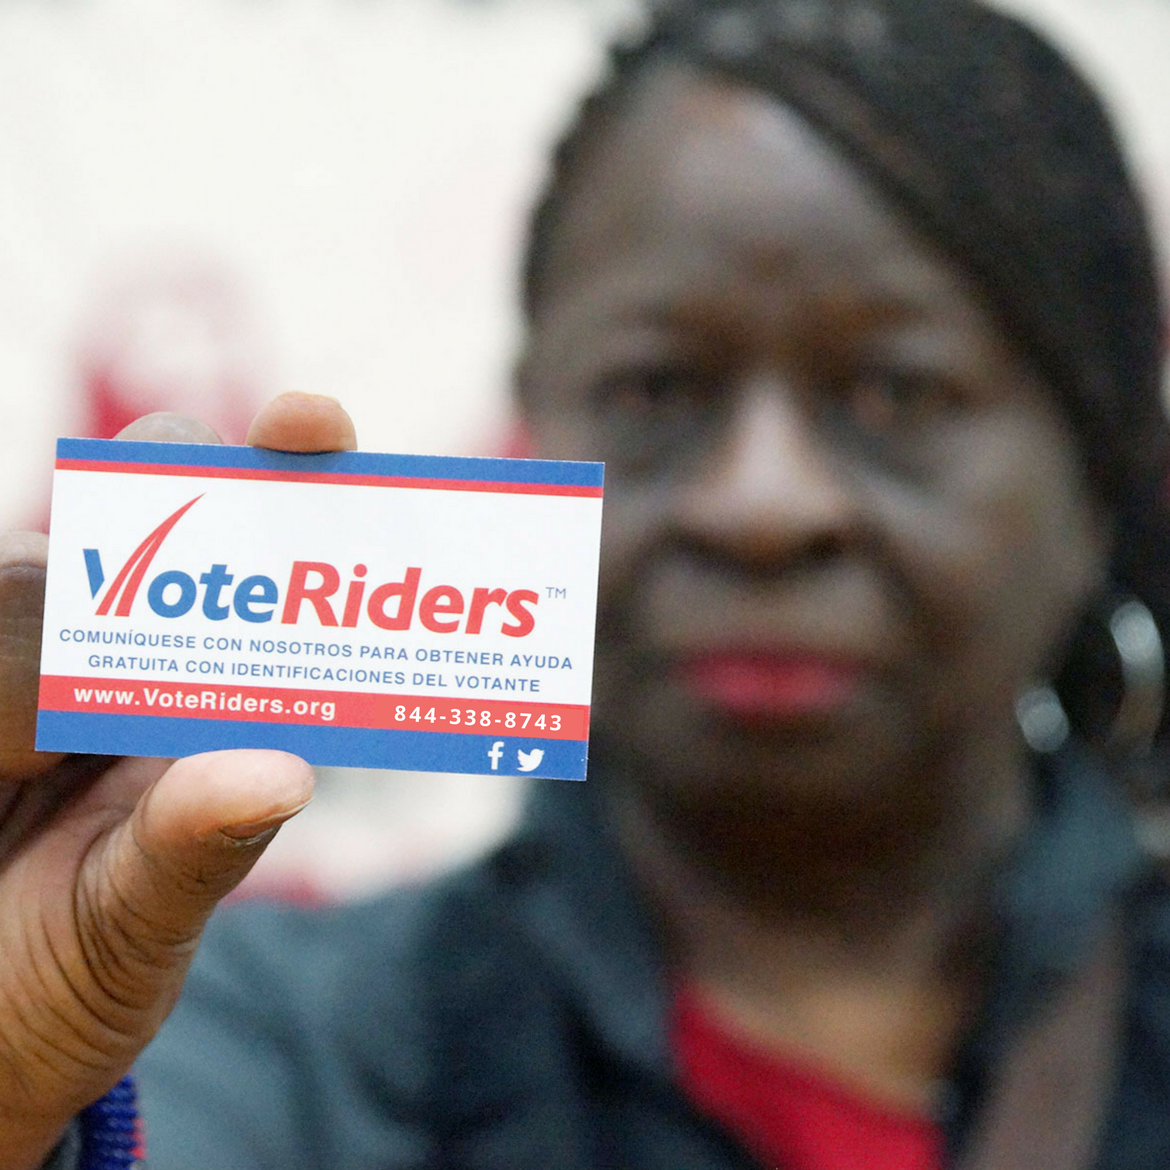 Anita holding VoteRiders card